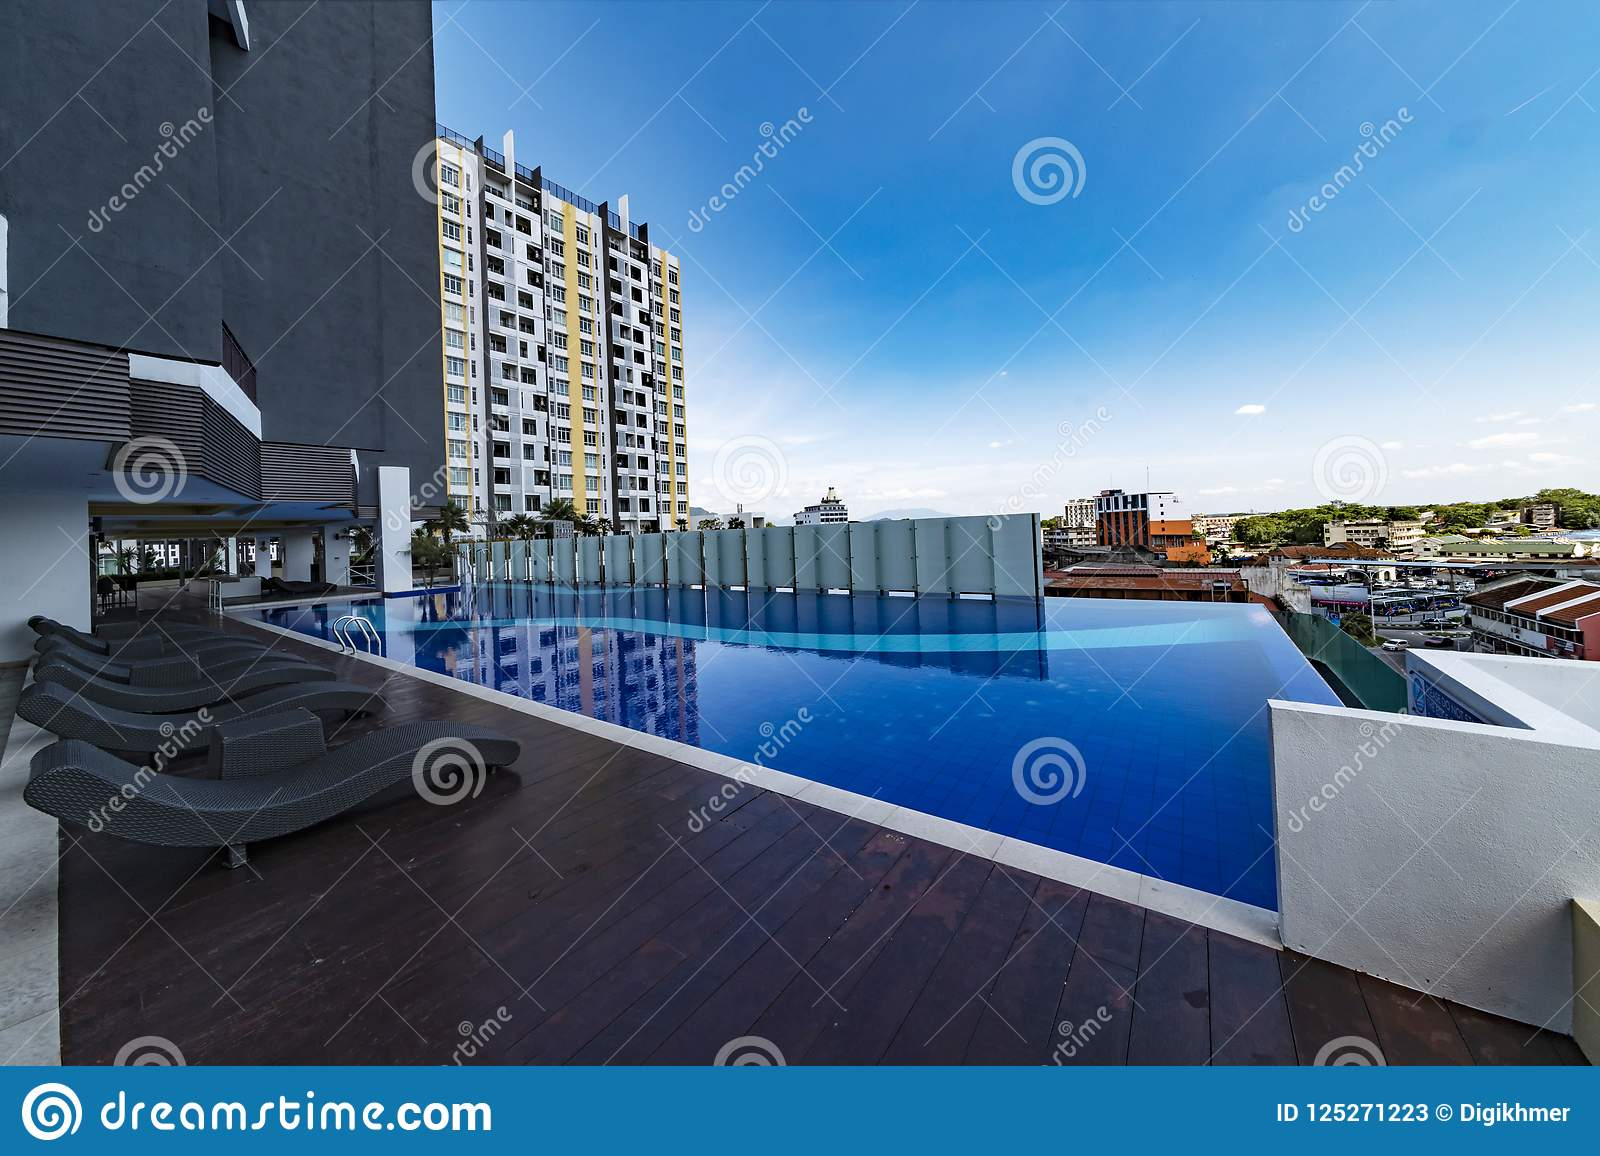 Pool Terrasse Terrasse And Swimming Pool Of Malaysian Condominium Stock Image